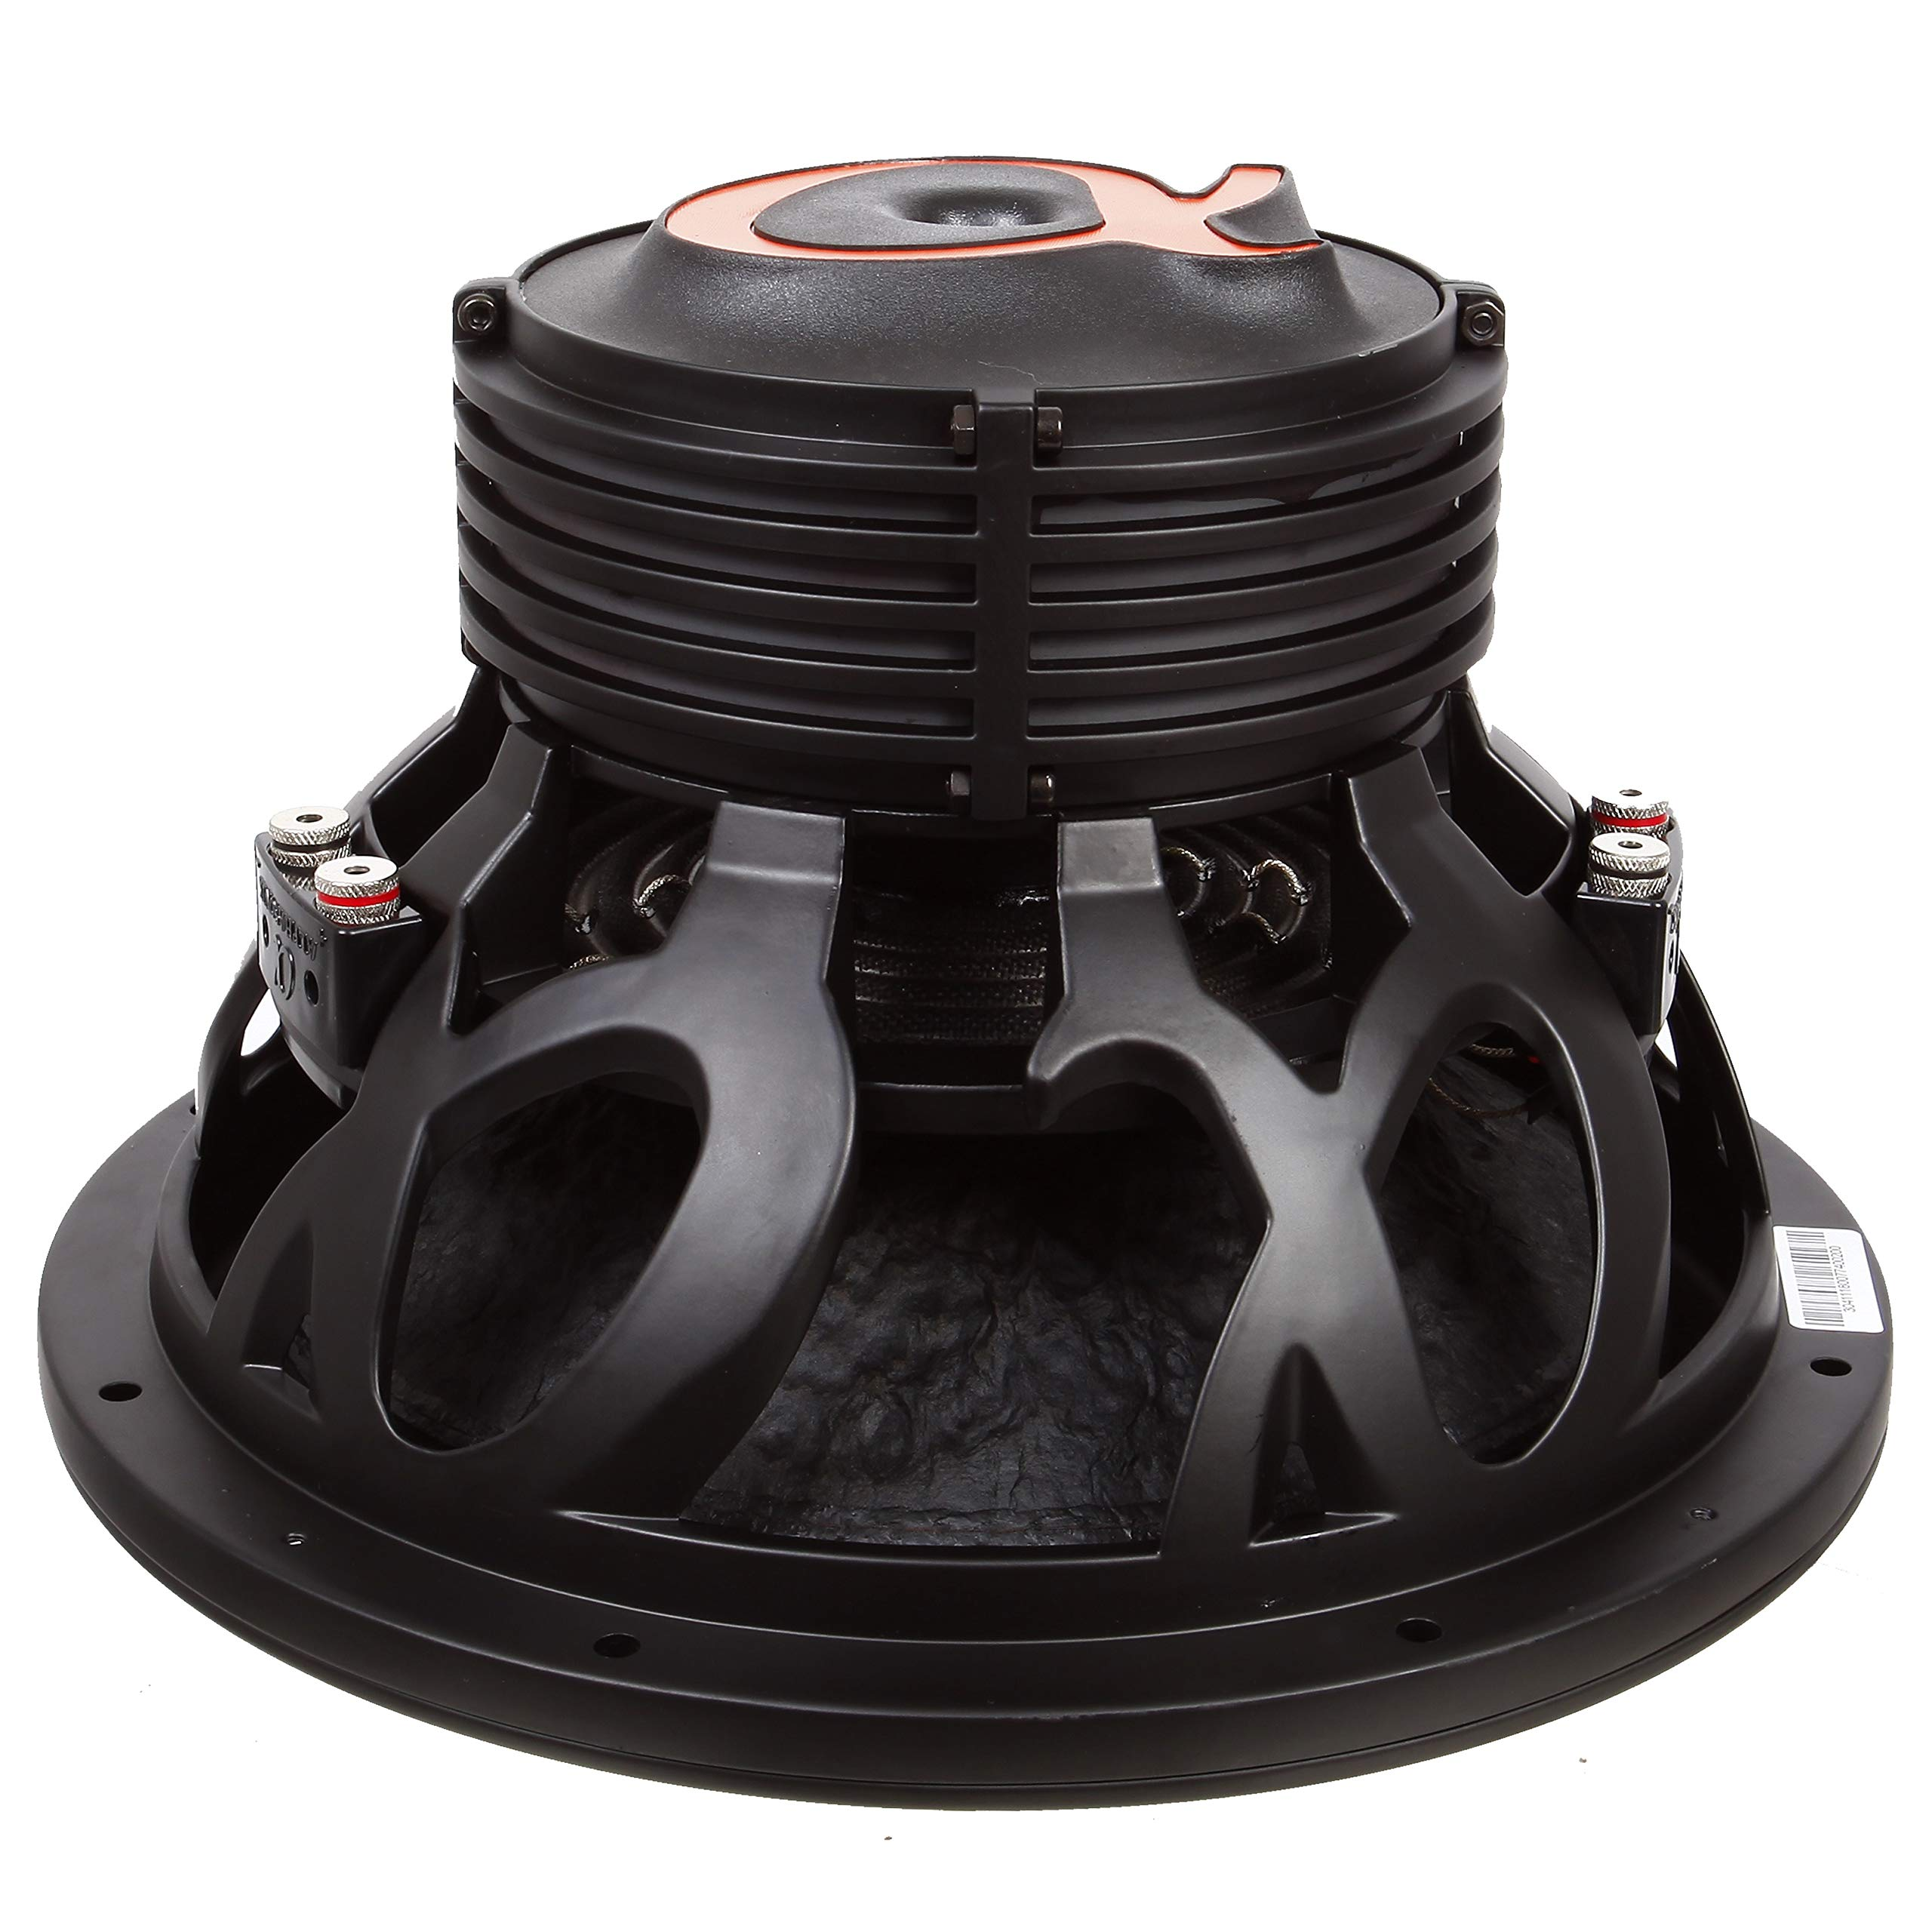 """Alphasonik DSW510 Dynamis 500 Series 10/"""" 2100 Watts Max 700 Watts RMS Dual 4 Ohm Car Subwoofer Die Cast Aluminum Basket w// Double Stacked Magnets Carbon Fiber Cone Cooling Rings System Sub Woofer"""